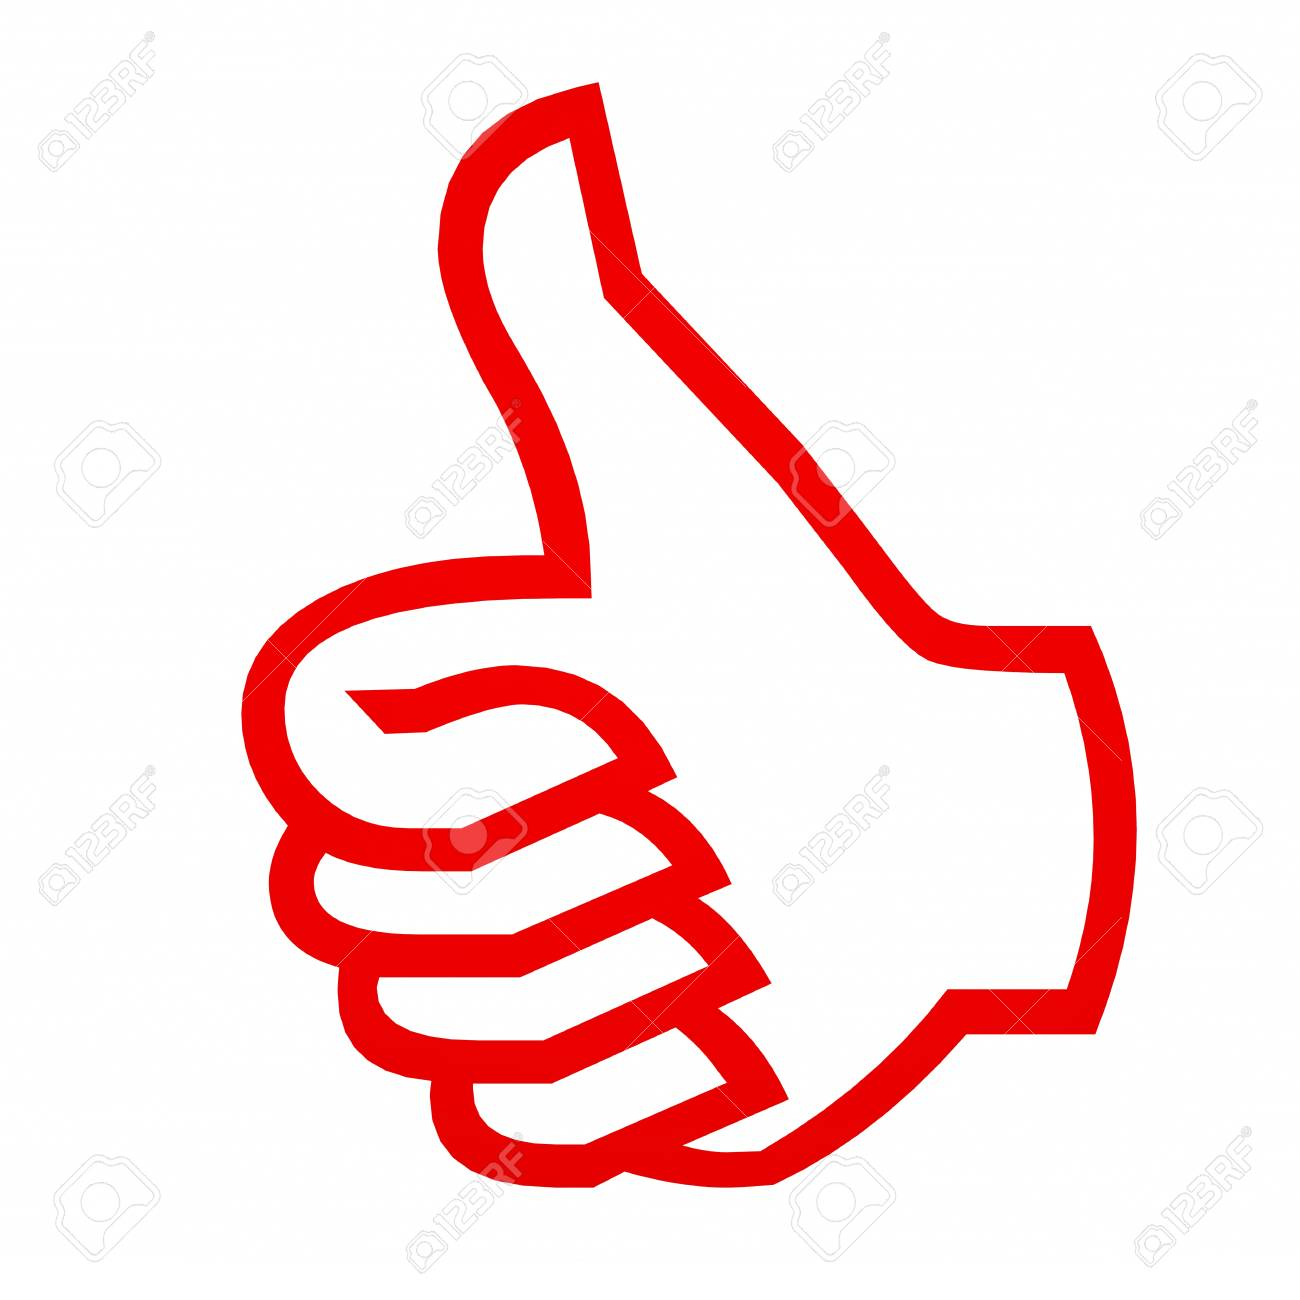 Thumbs up gesture. Computer generated image. Stock Photo - 11818145